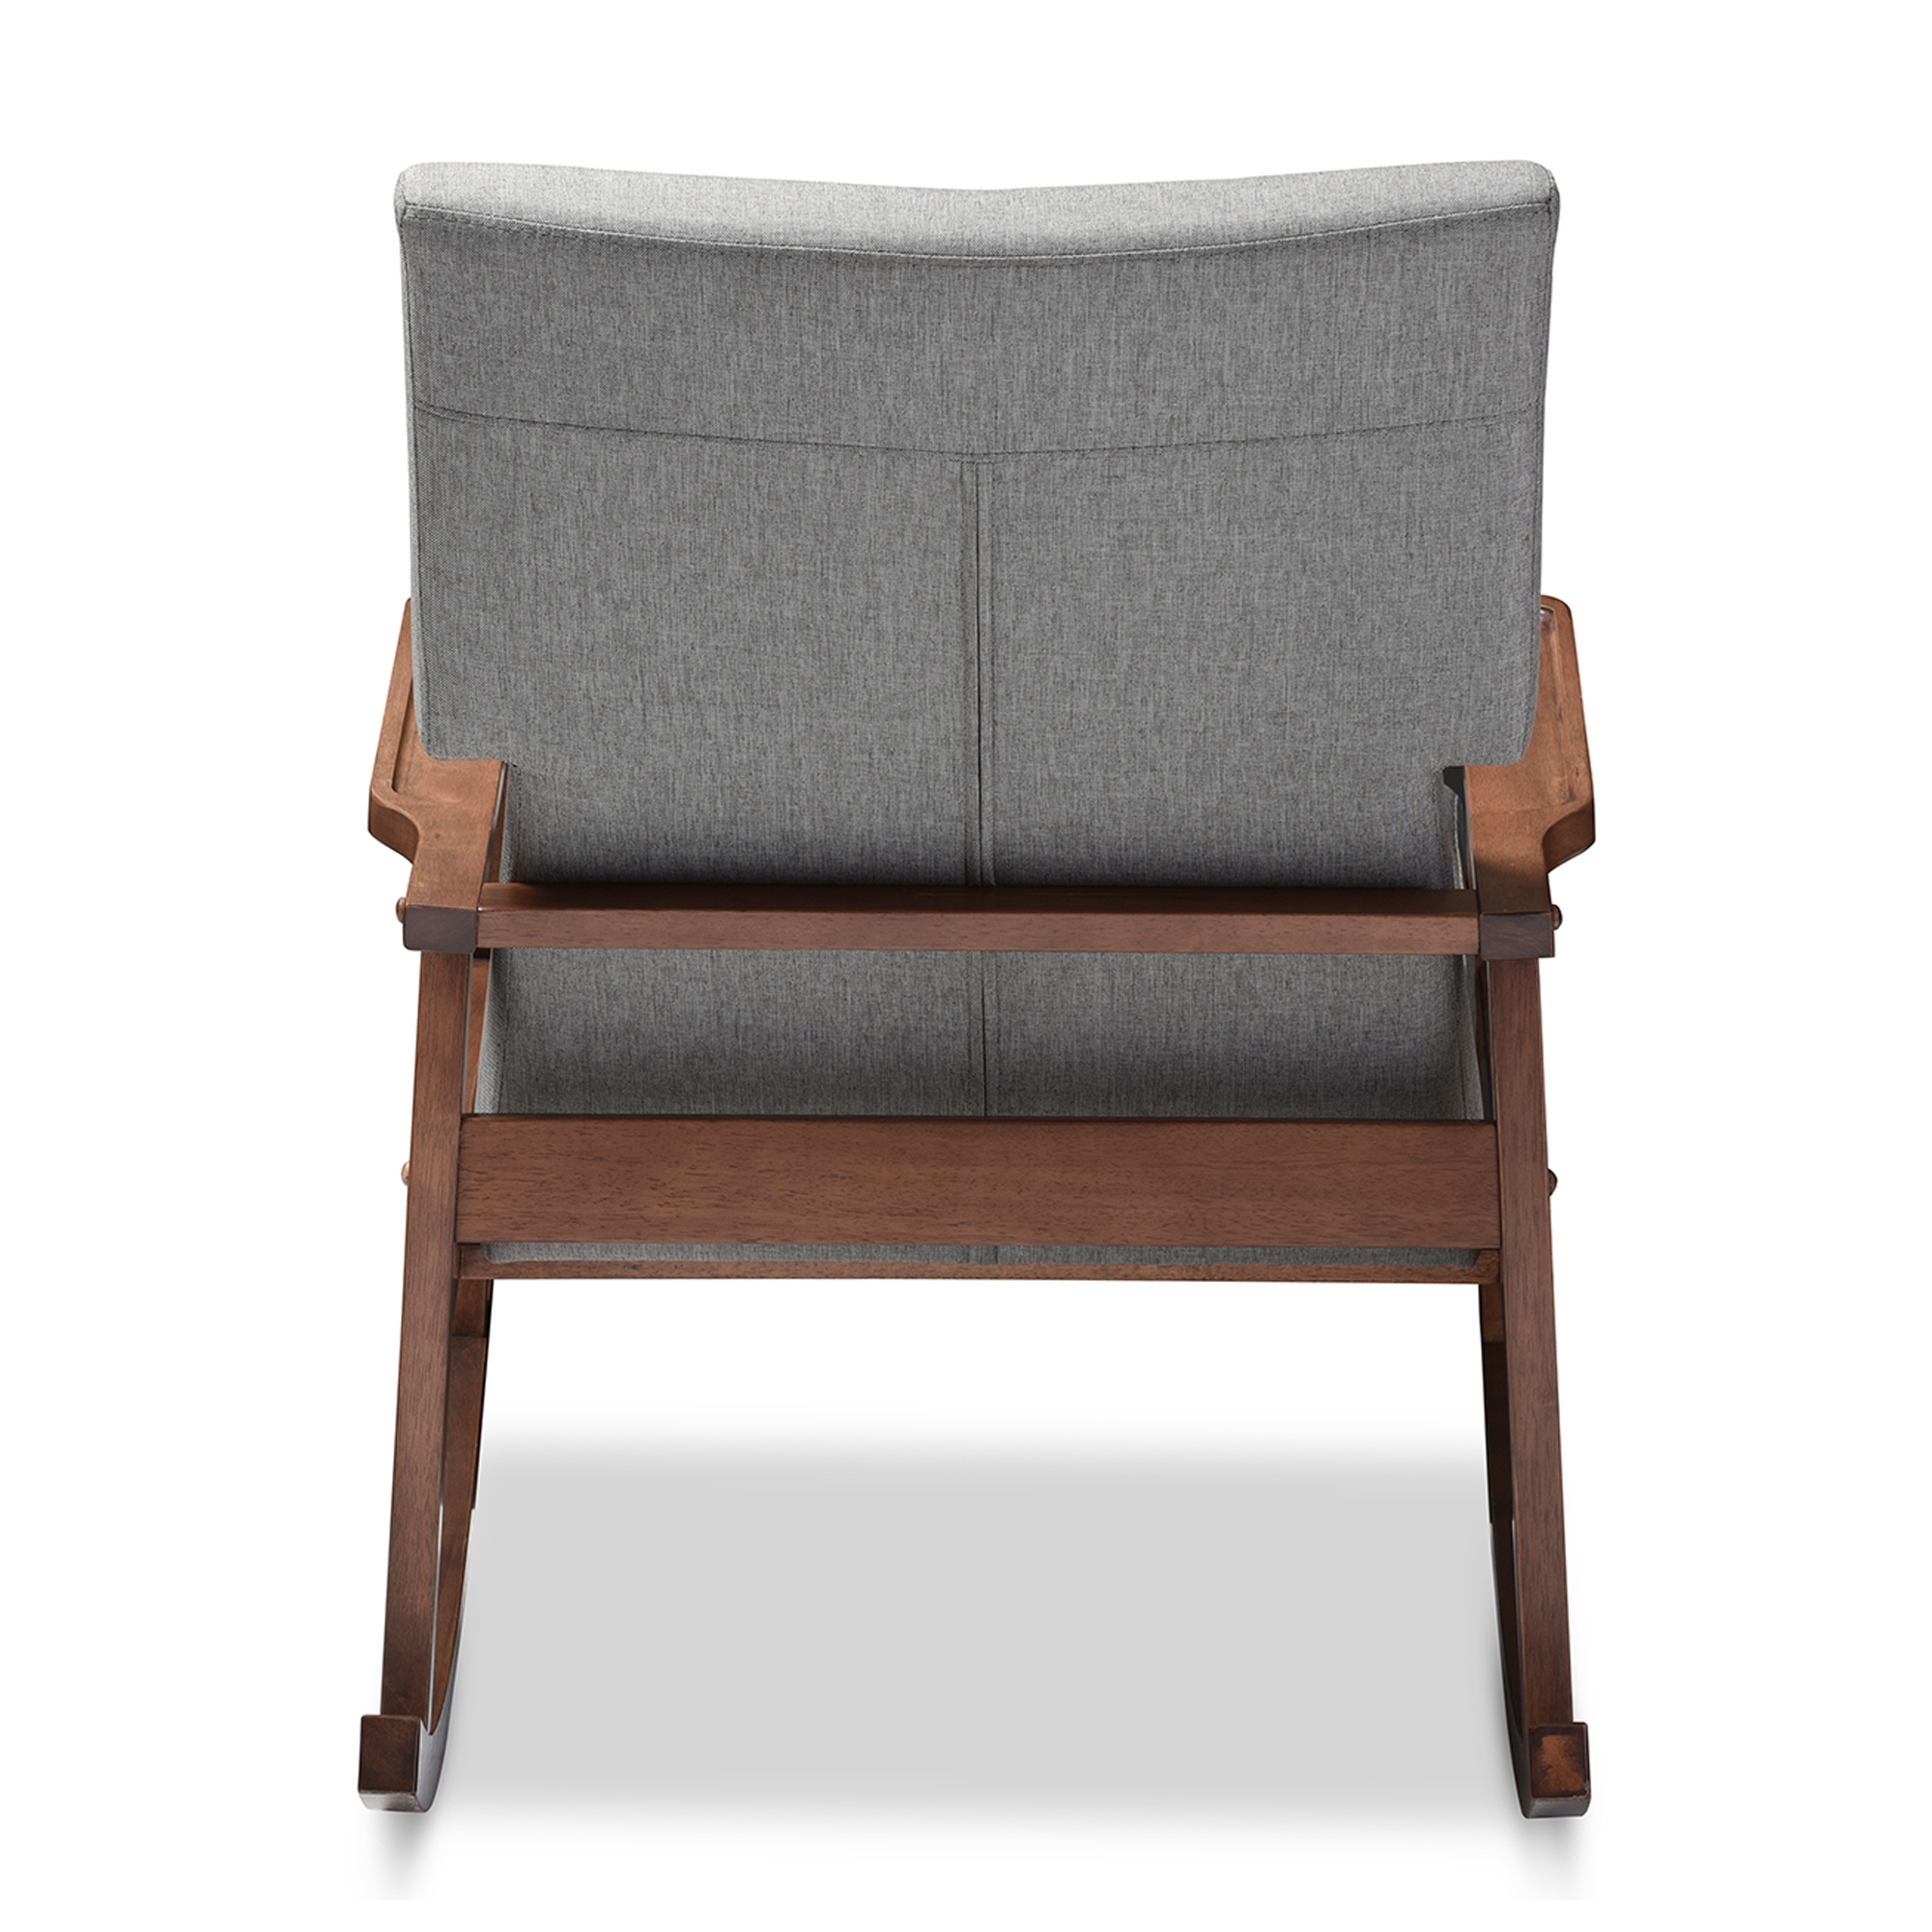 ... Baxton Studio Agatha Mid Century Modern Grey Fabric Upholstered  Button Tufted Rocking Chair ...